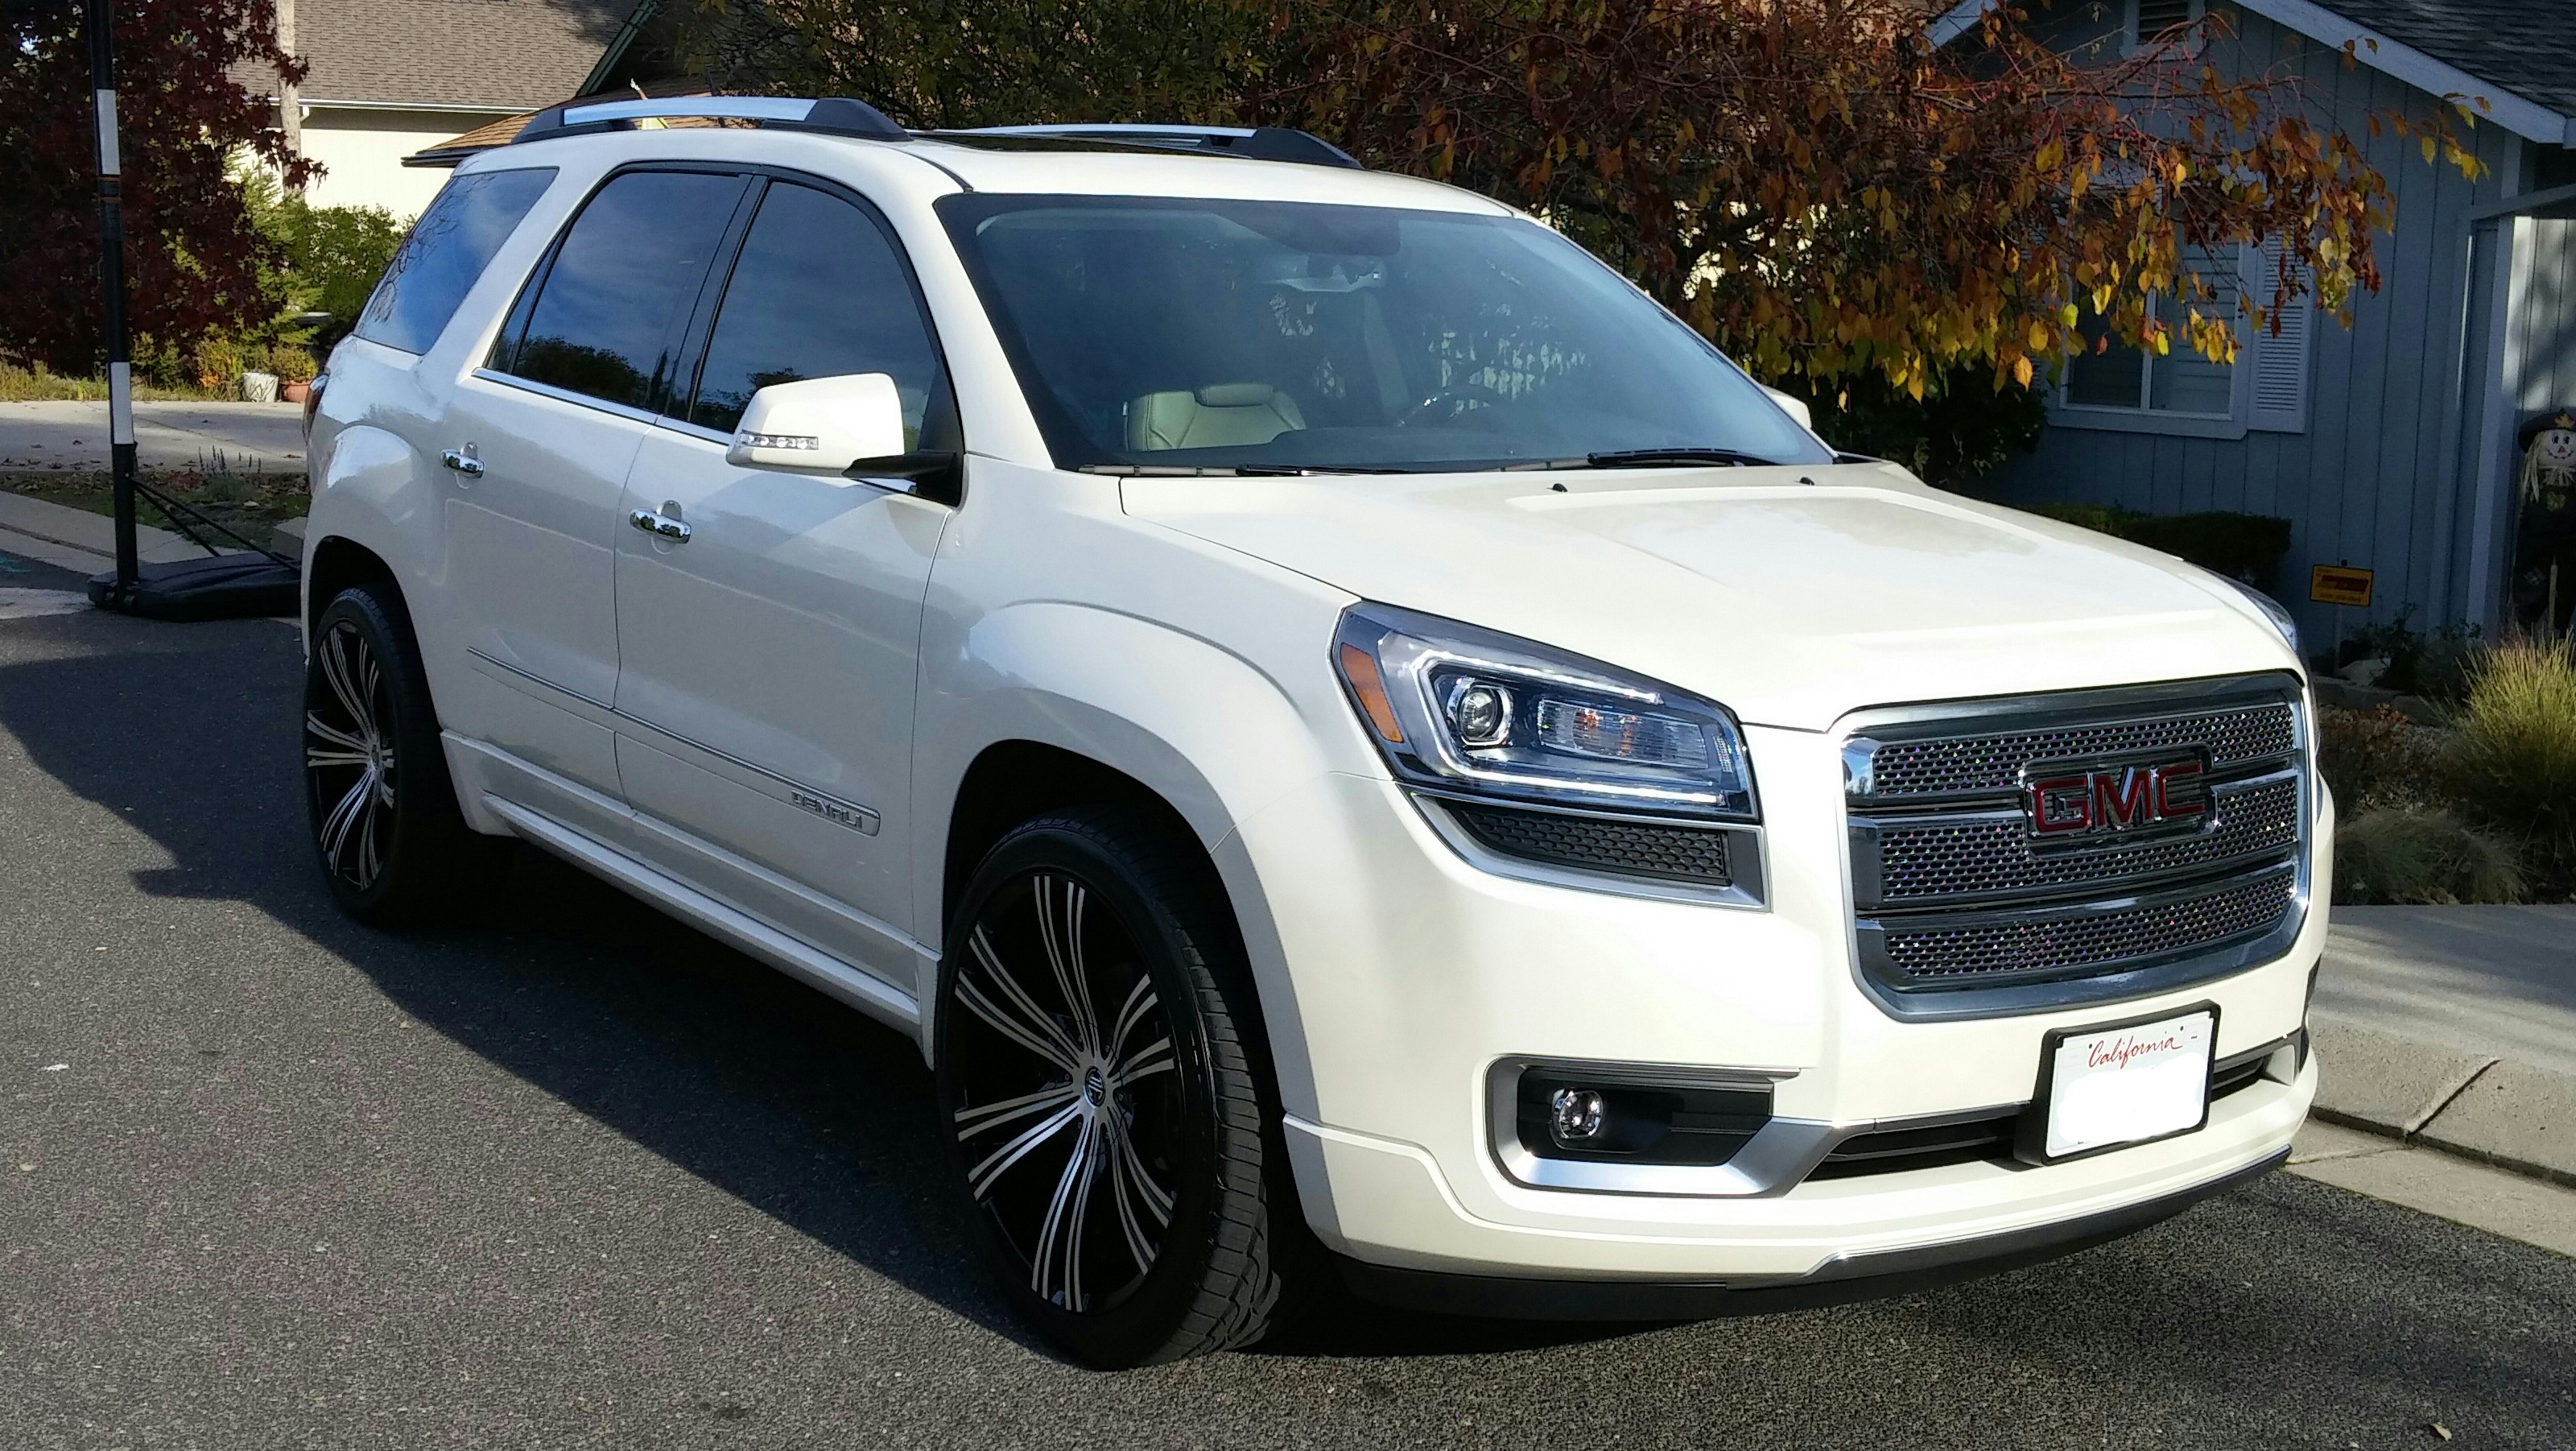 "2013 Gmc Acadia For Sale >> 2013 Acadia Denali (White Diamond) on 22"" 2Crave Wheels - GMC Acadia Forum: AcadiaForum.net"